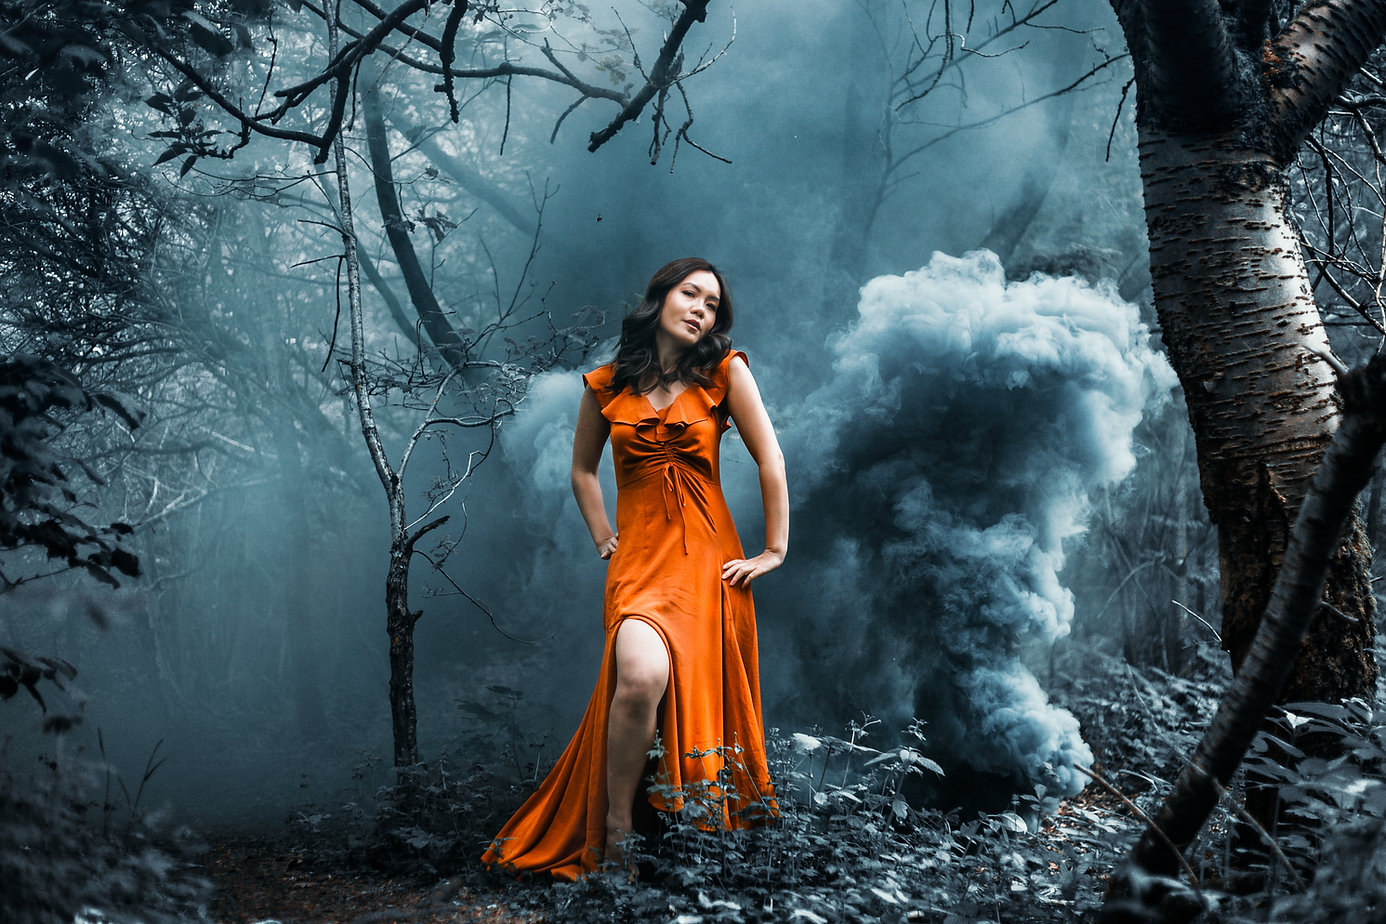 A woman stands alone in a forest in Manchester surrounded by a blue smoke grenade